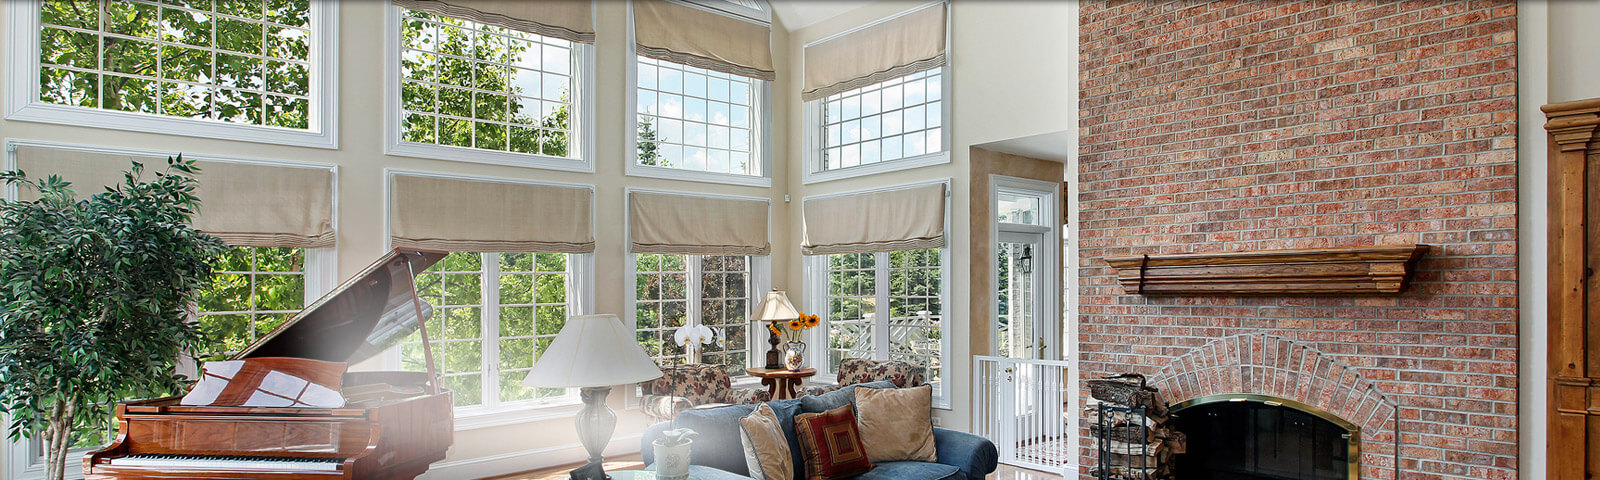 Advanced Window Products: Energy efficient windows Houston TX